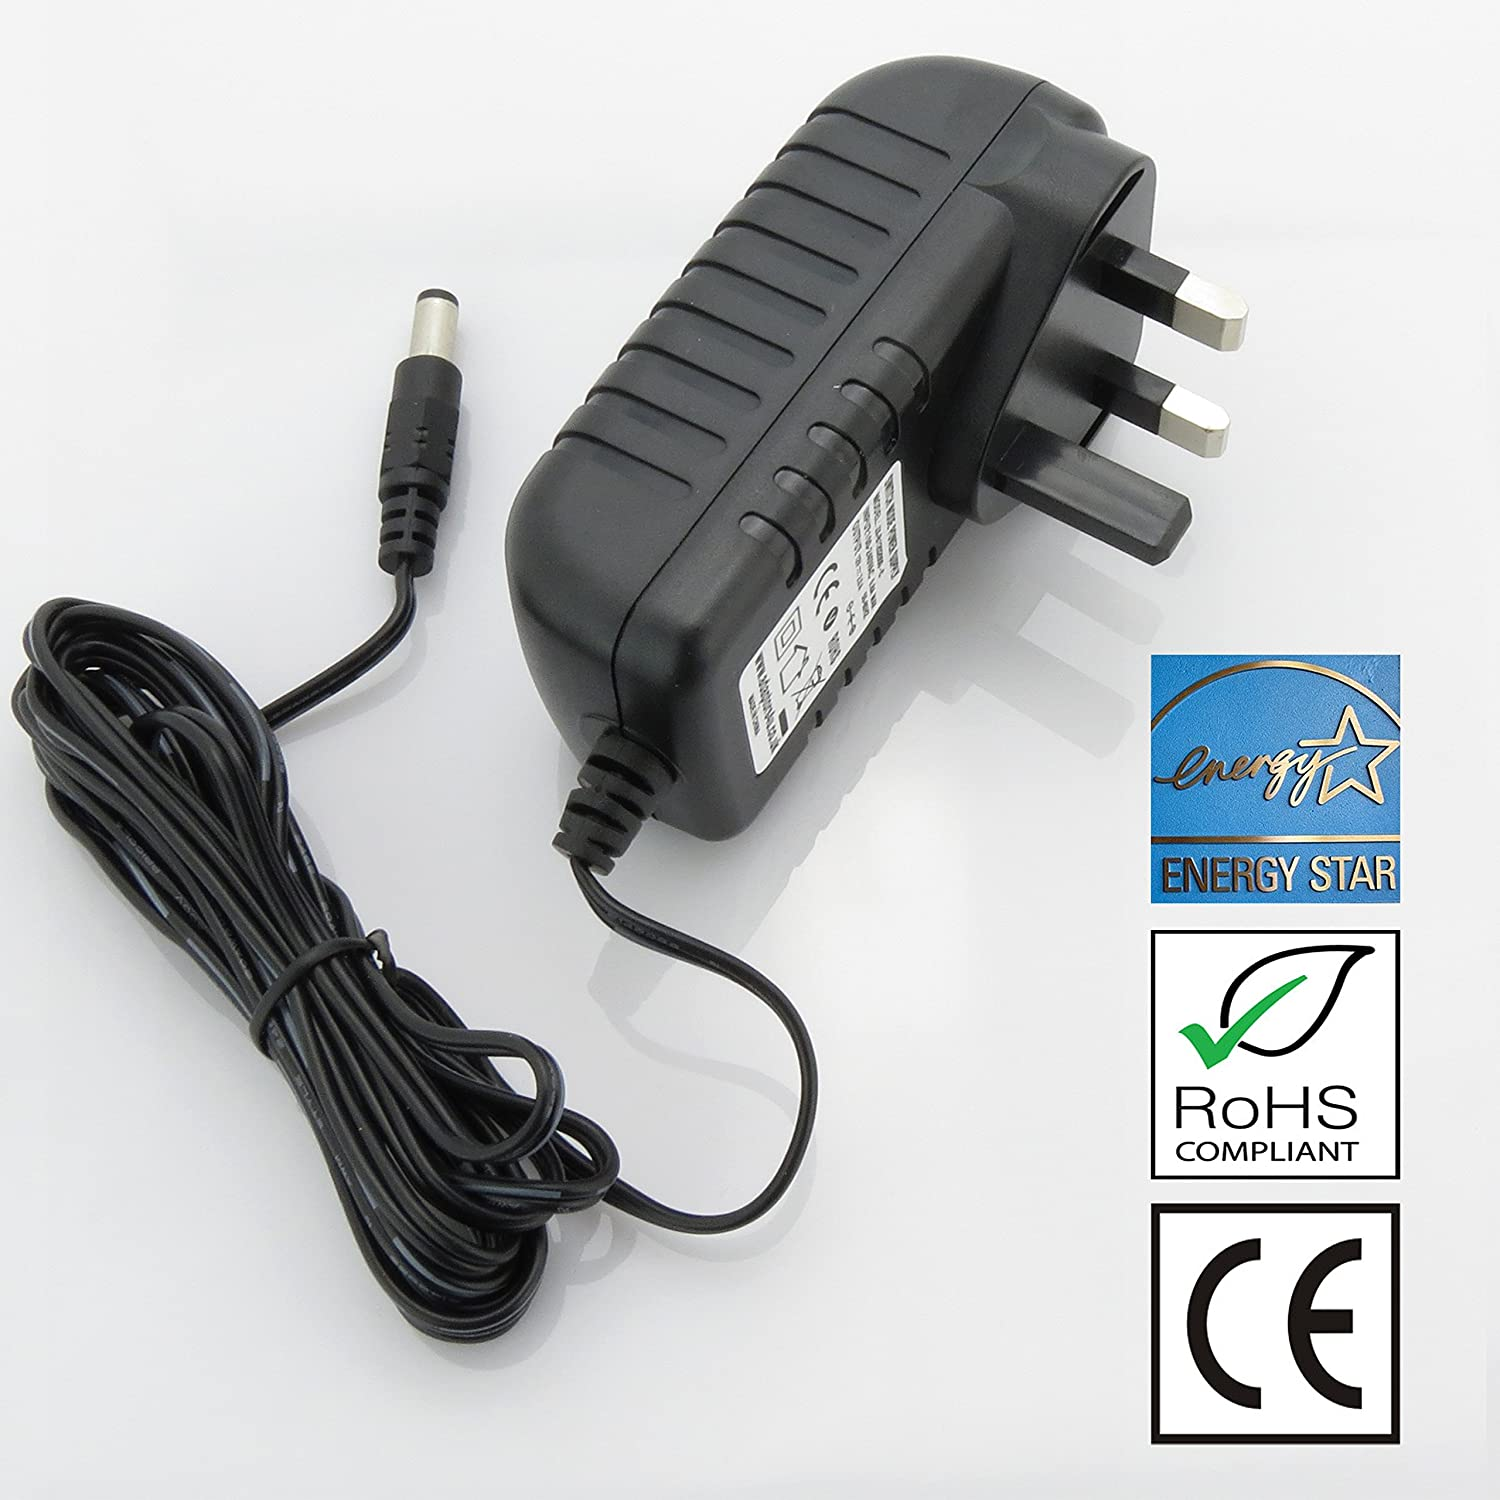 Seagate Freeagent Desk Power Supply Replacement Hostgarcia